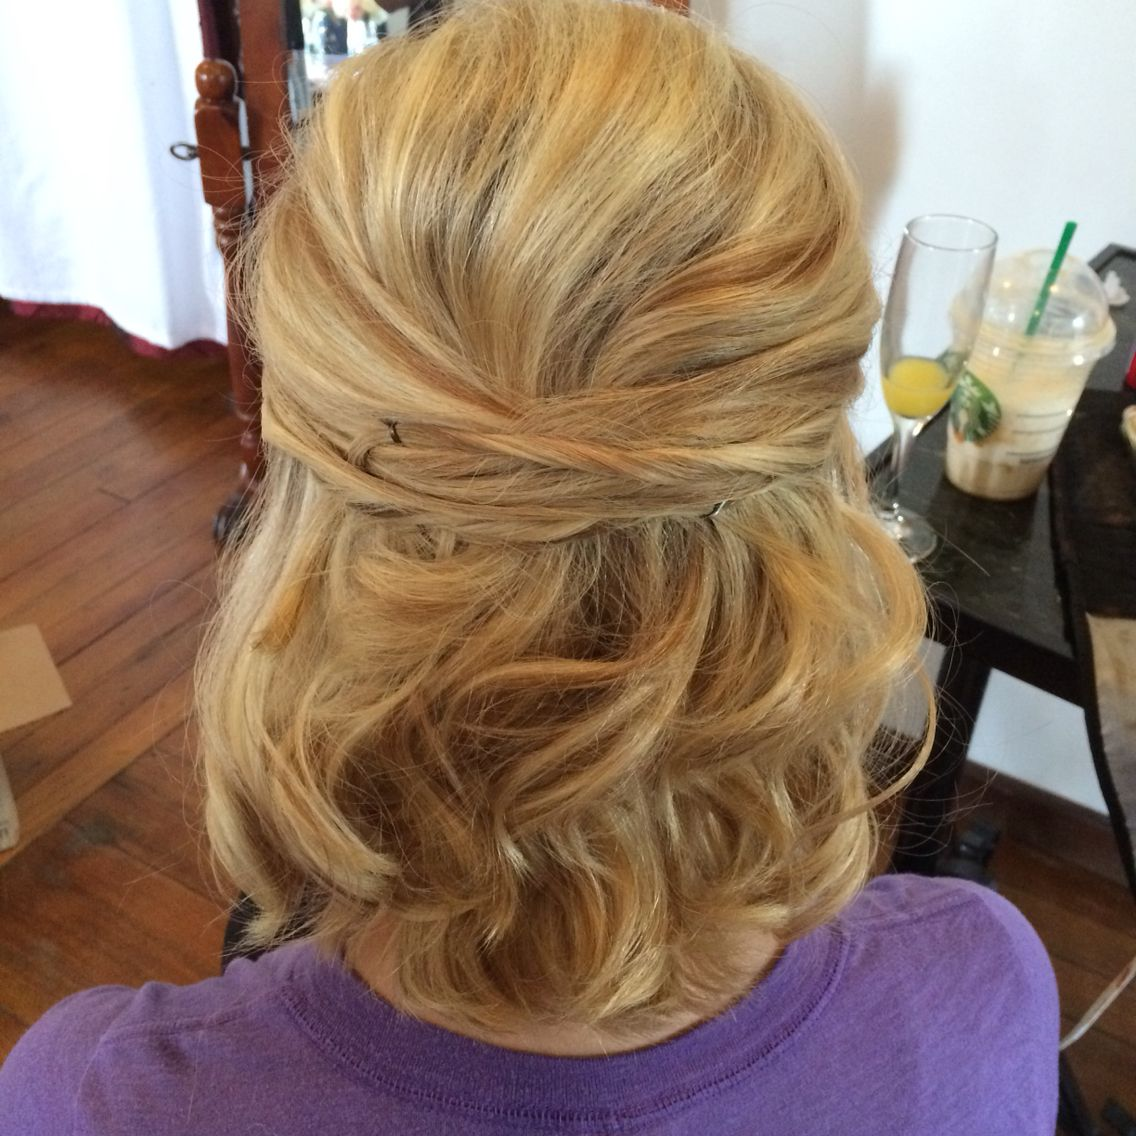 Beehive Hairstyles For Wedding: Specialty Style, Wedding Hair, Half Up Half Down, Short